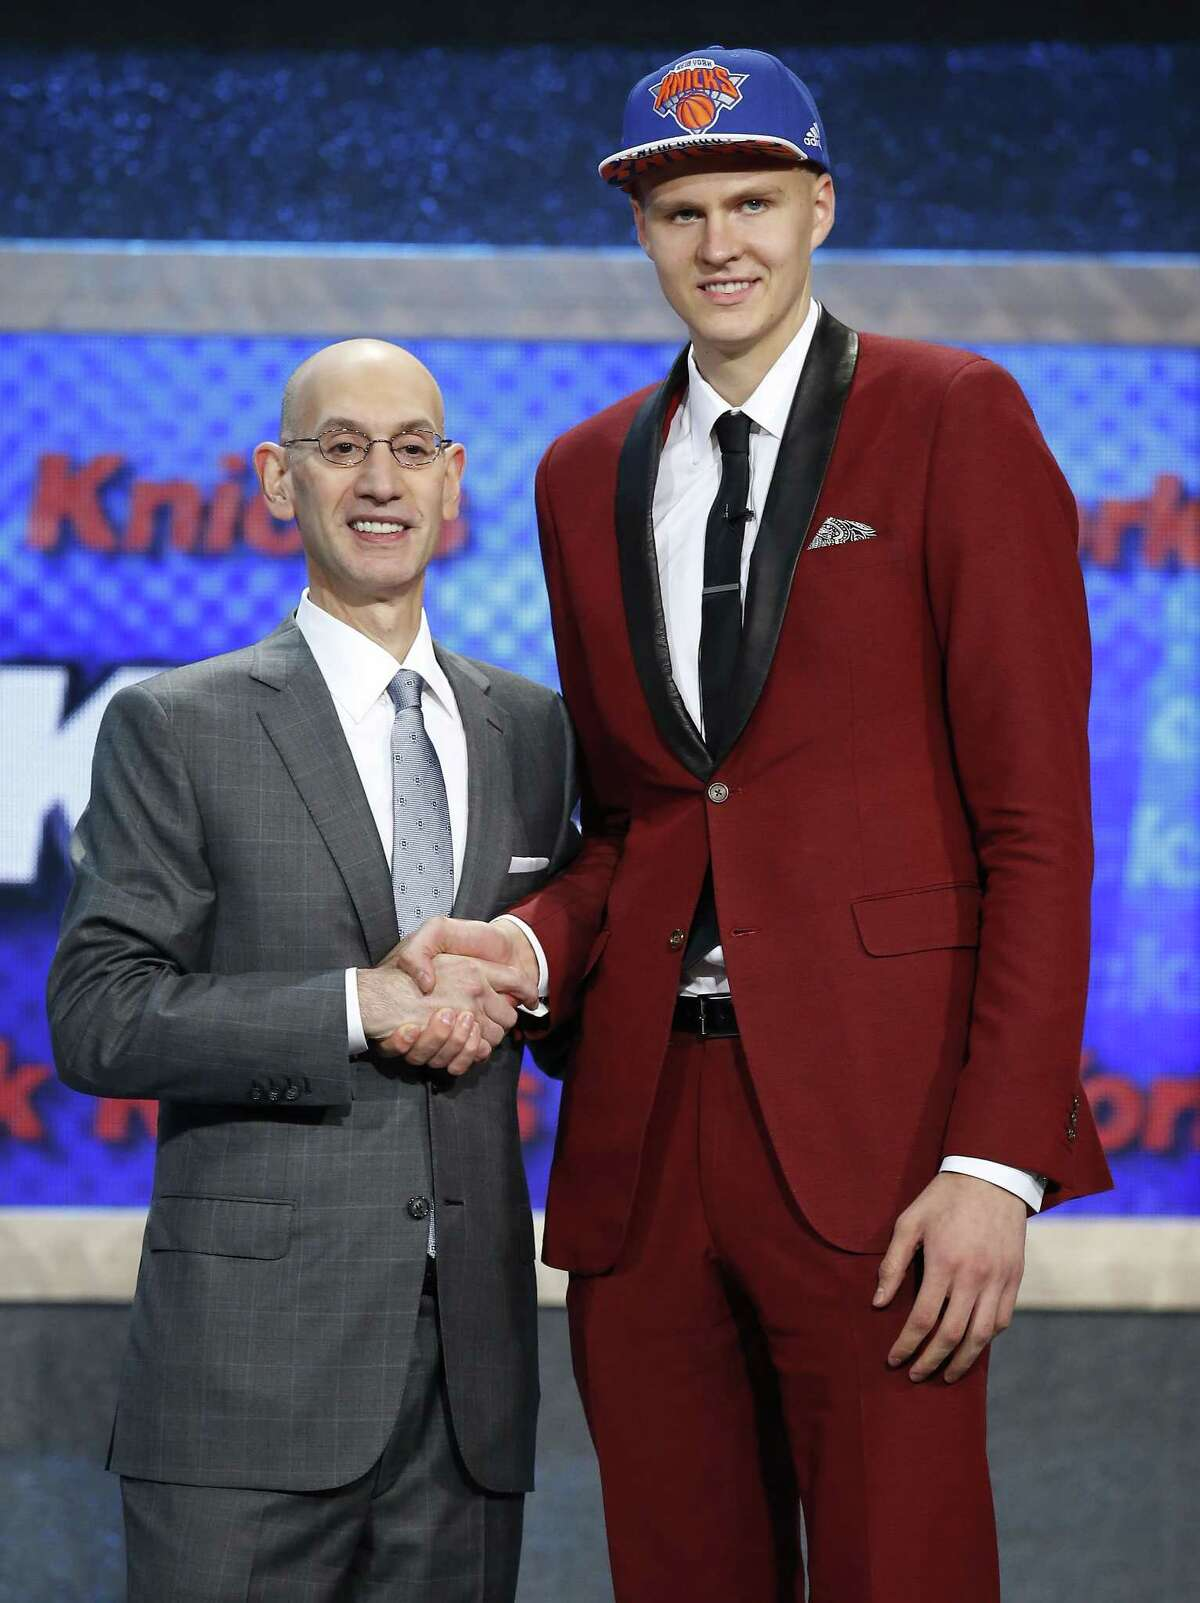 Kristaps Porzingis, right, poses for a photo with NBA Commissioner Adam Silver after being selected fourth overall by the New York Knicks during the NBA Draft on Thursday in New York.